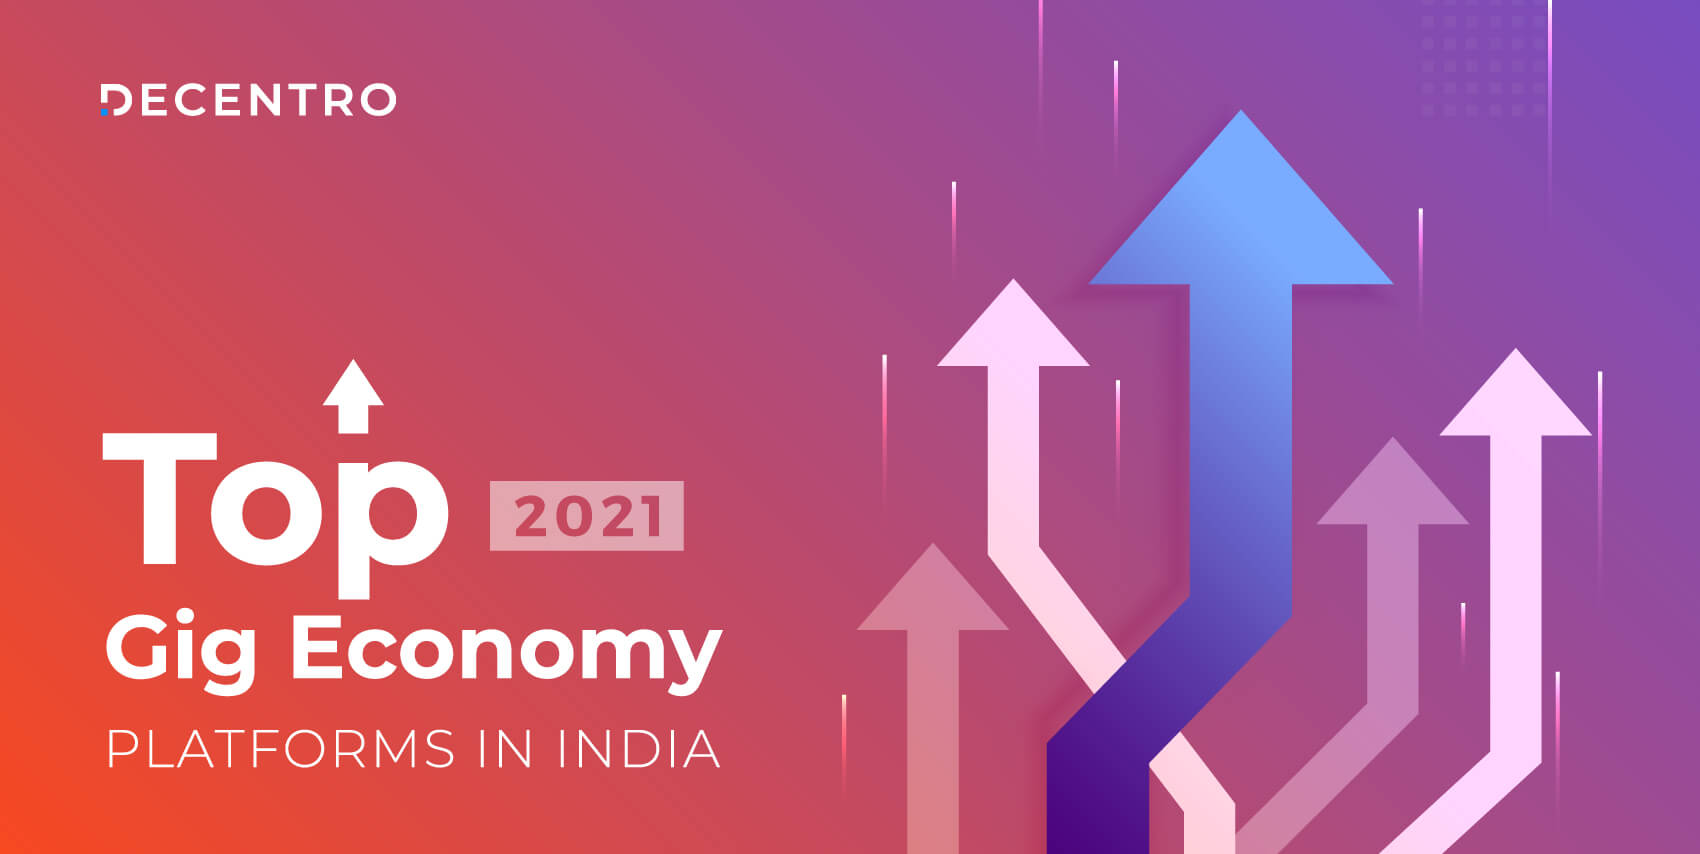 A list of the top gig economy platforms in India.